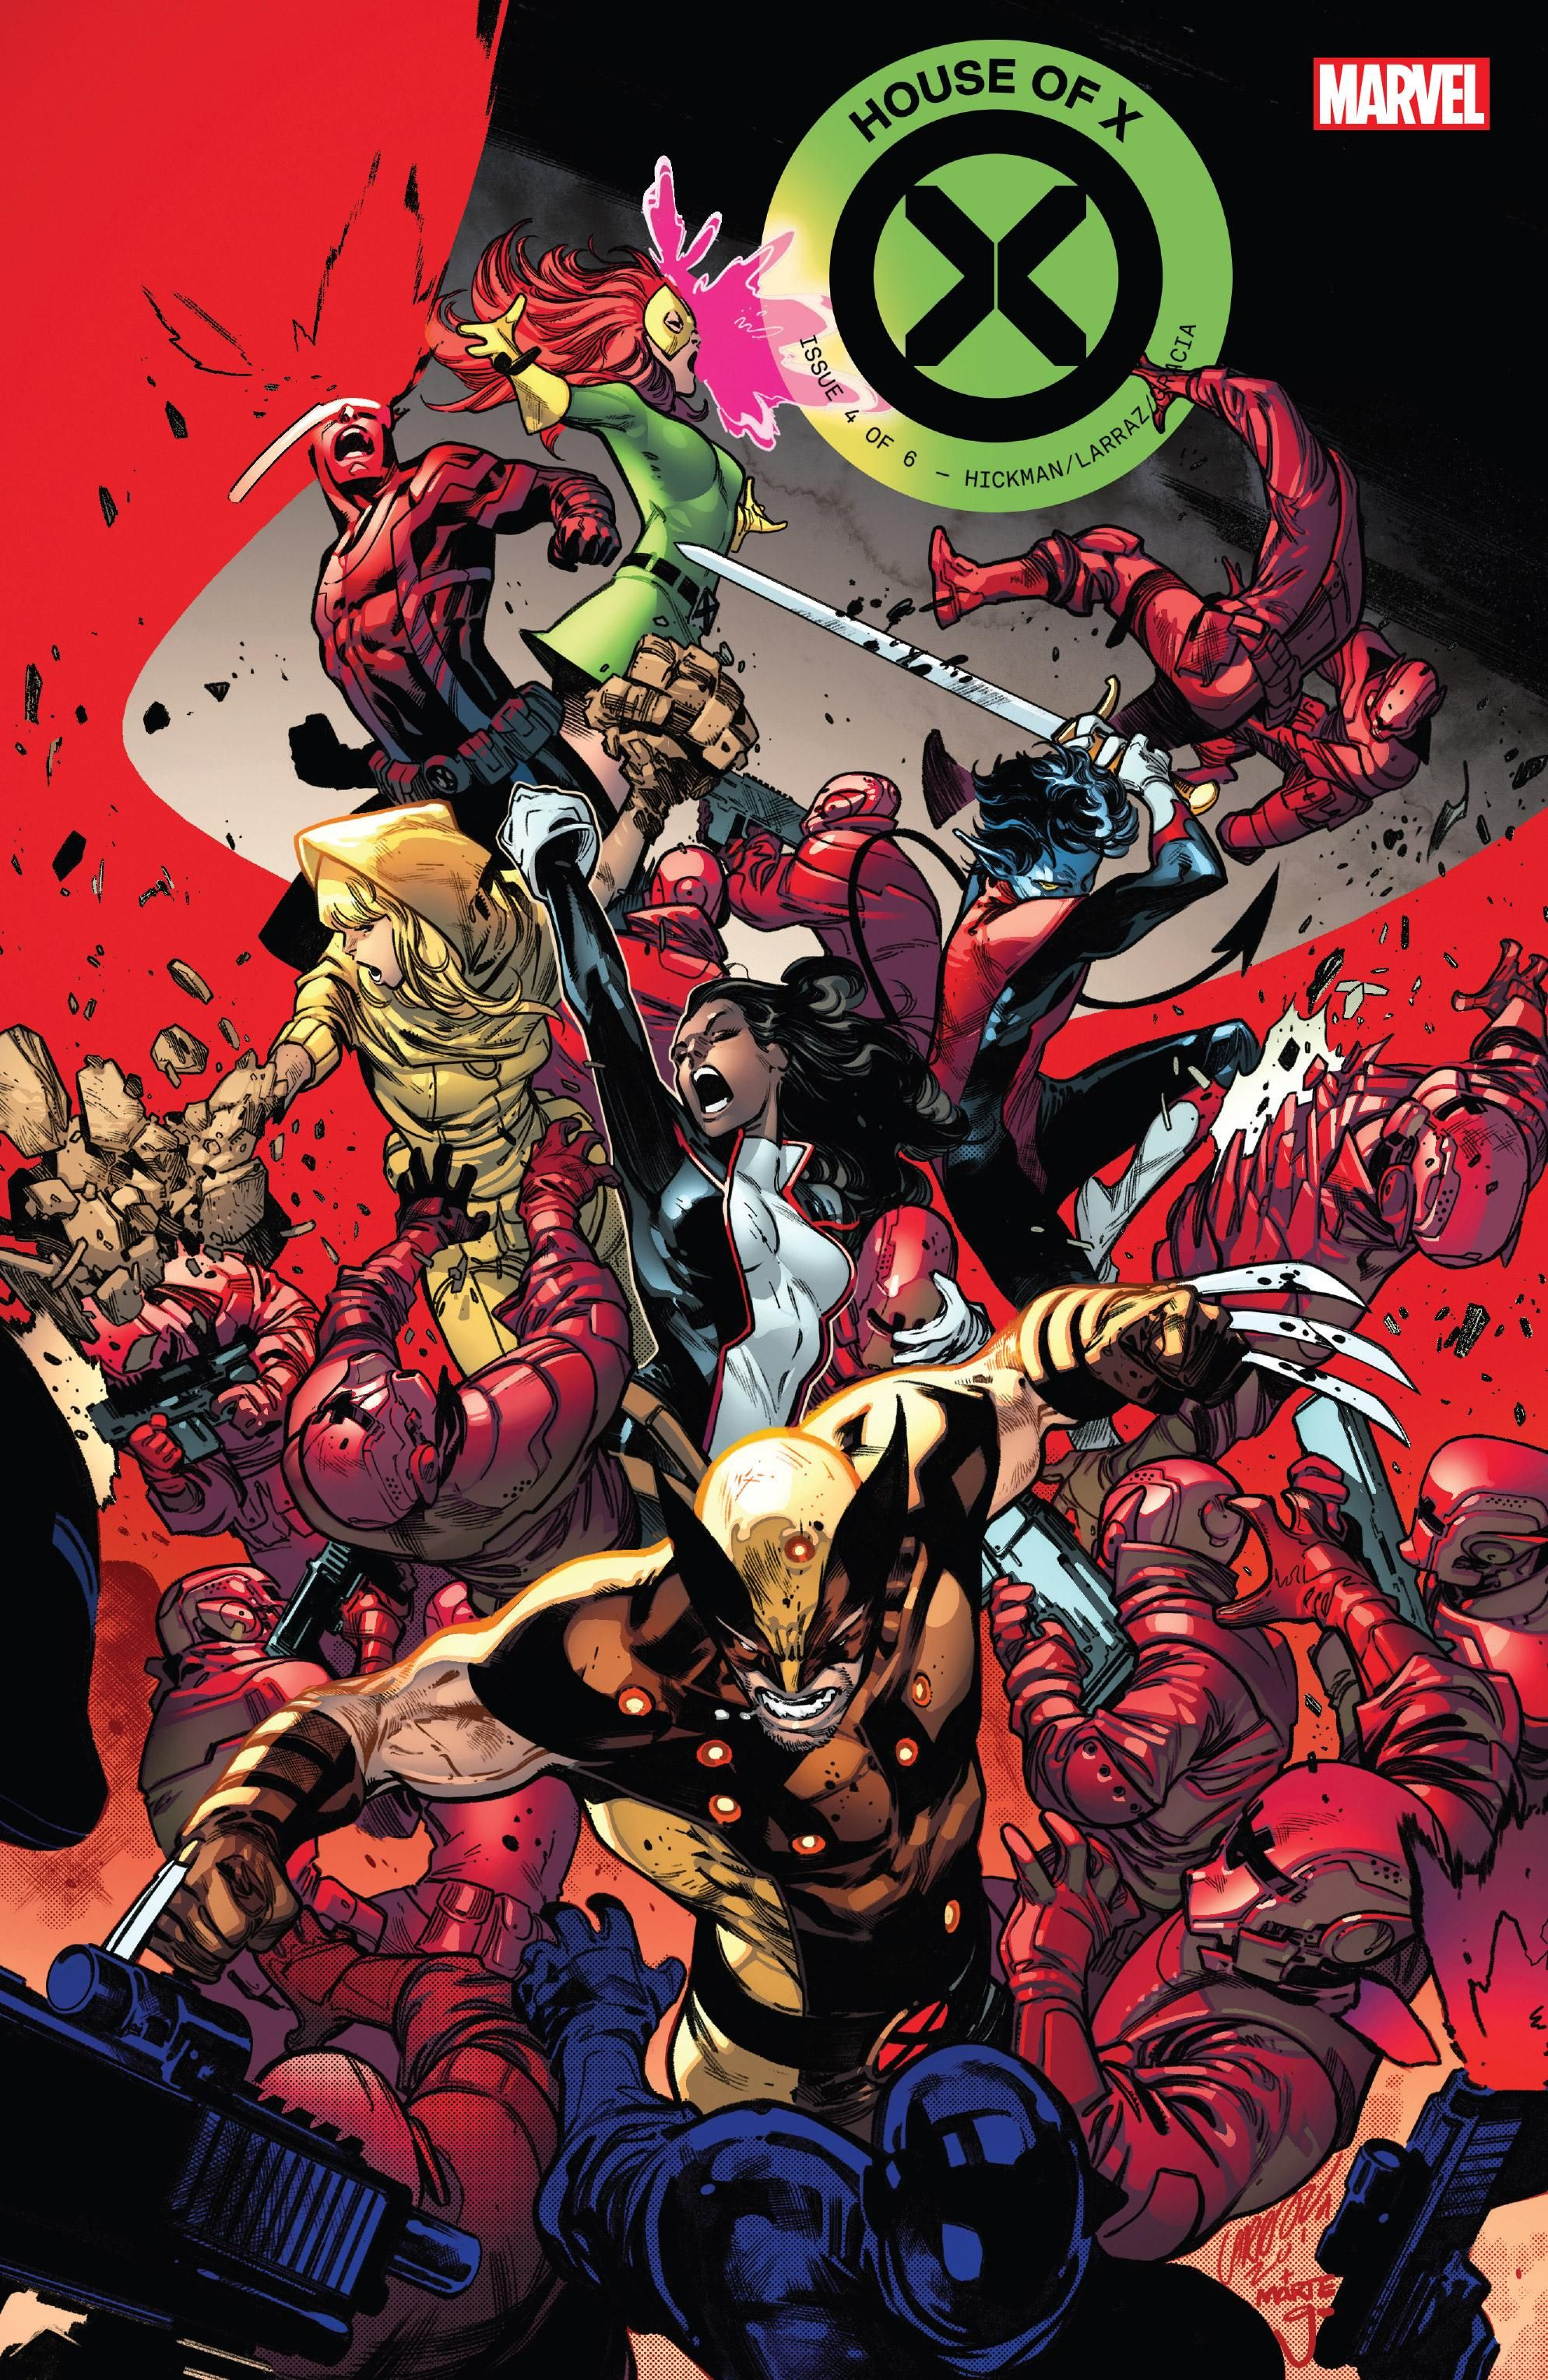 House of X Vol 1 4